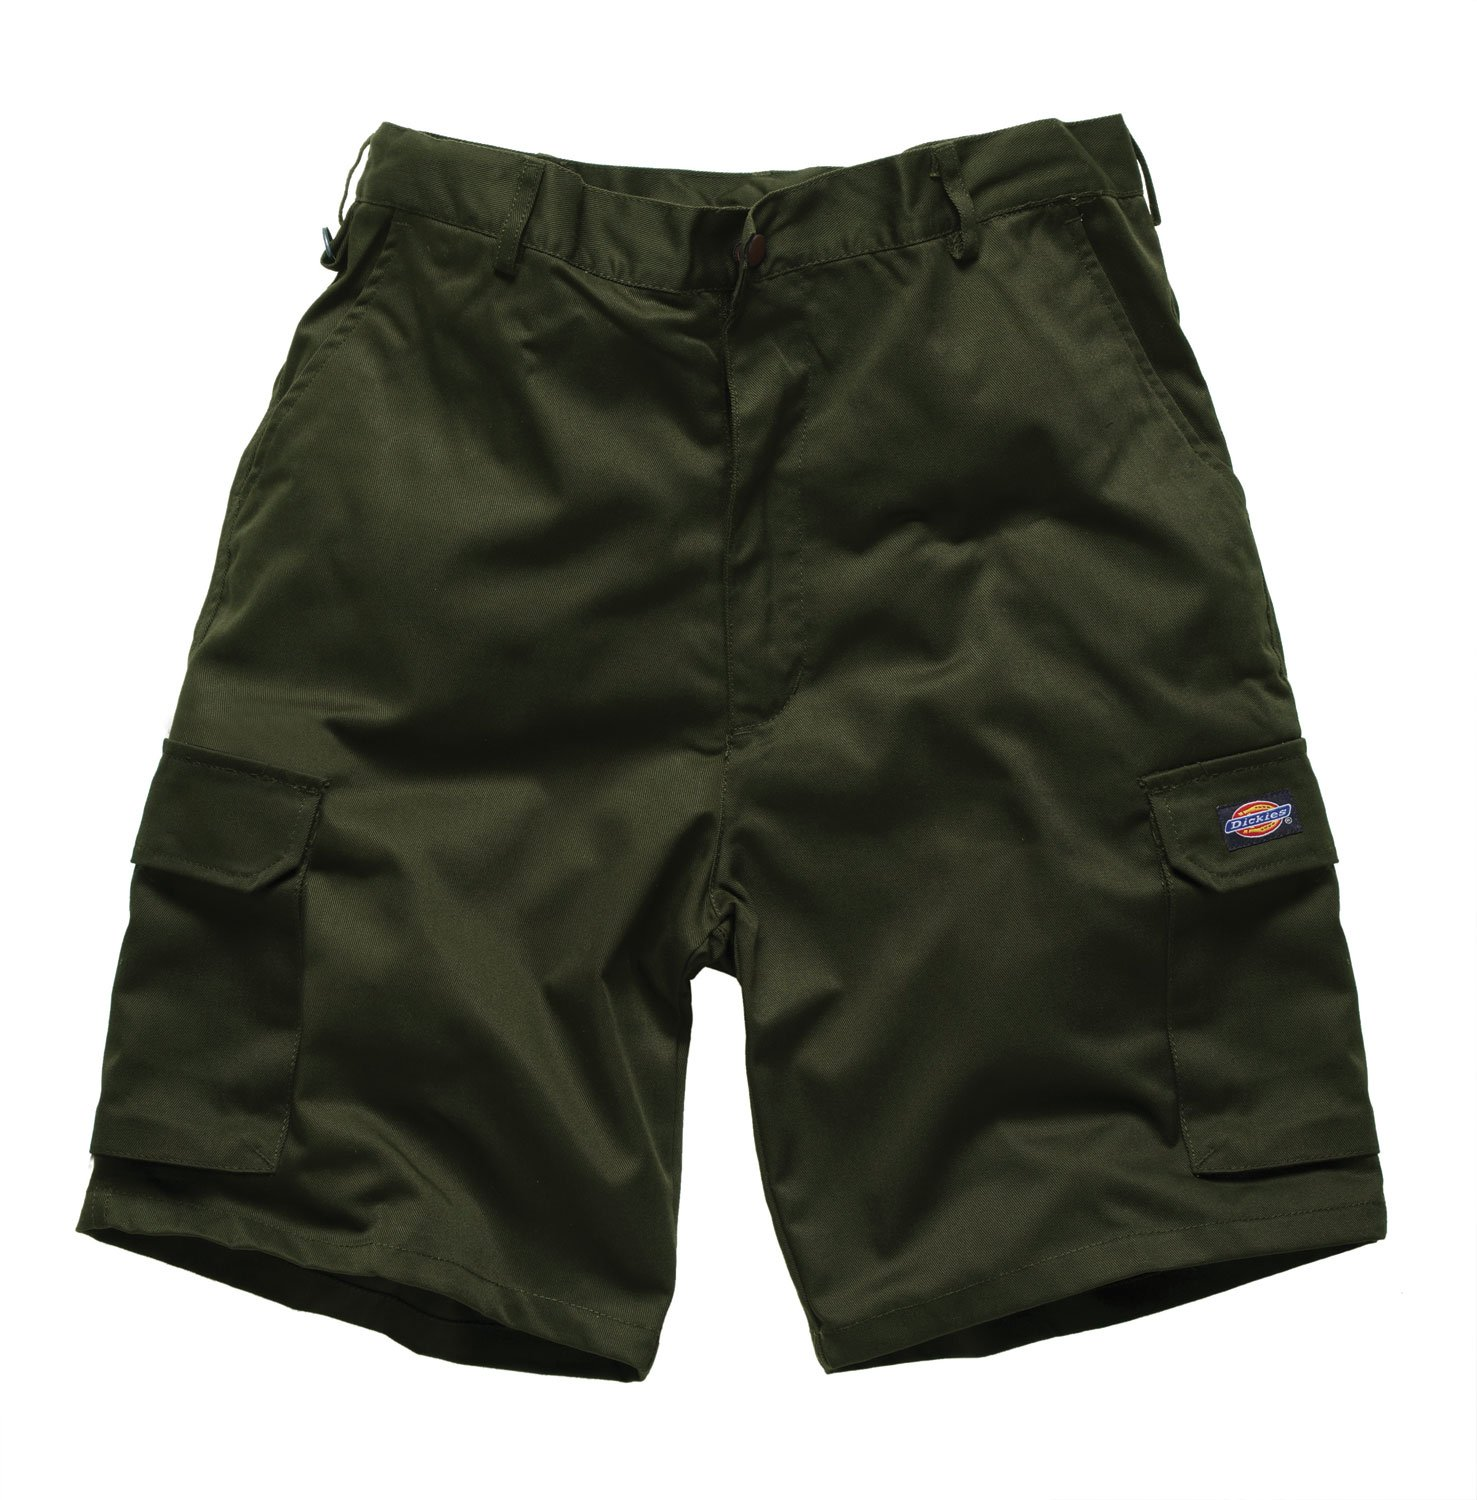 Dickies Men's Shorts Dickies Men' s Shorts UTBC311